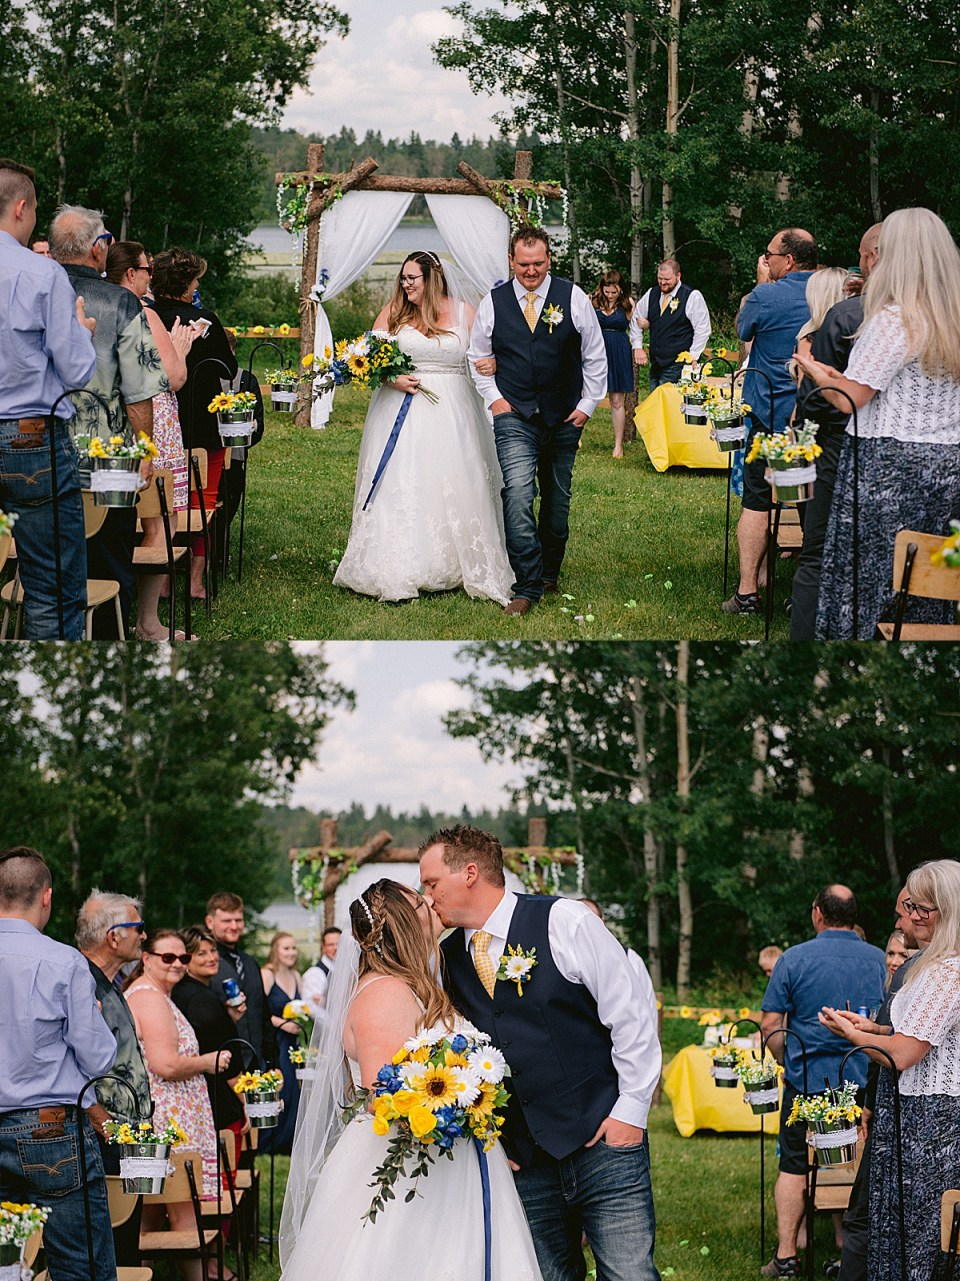 A Navy and Yellow Wedding at Watipi | Watipi Campground | Blackfalds, AB